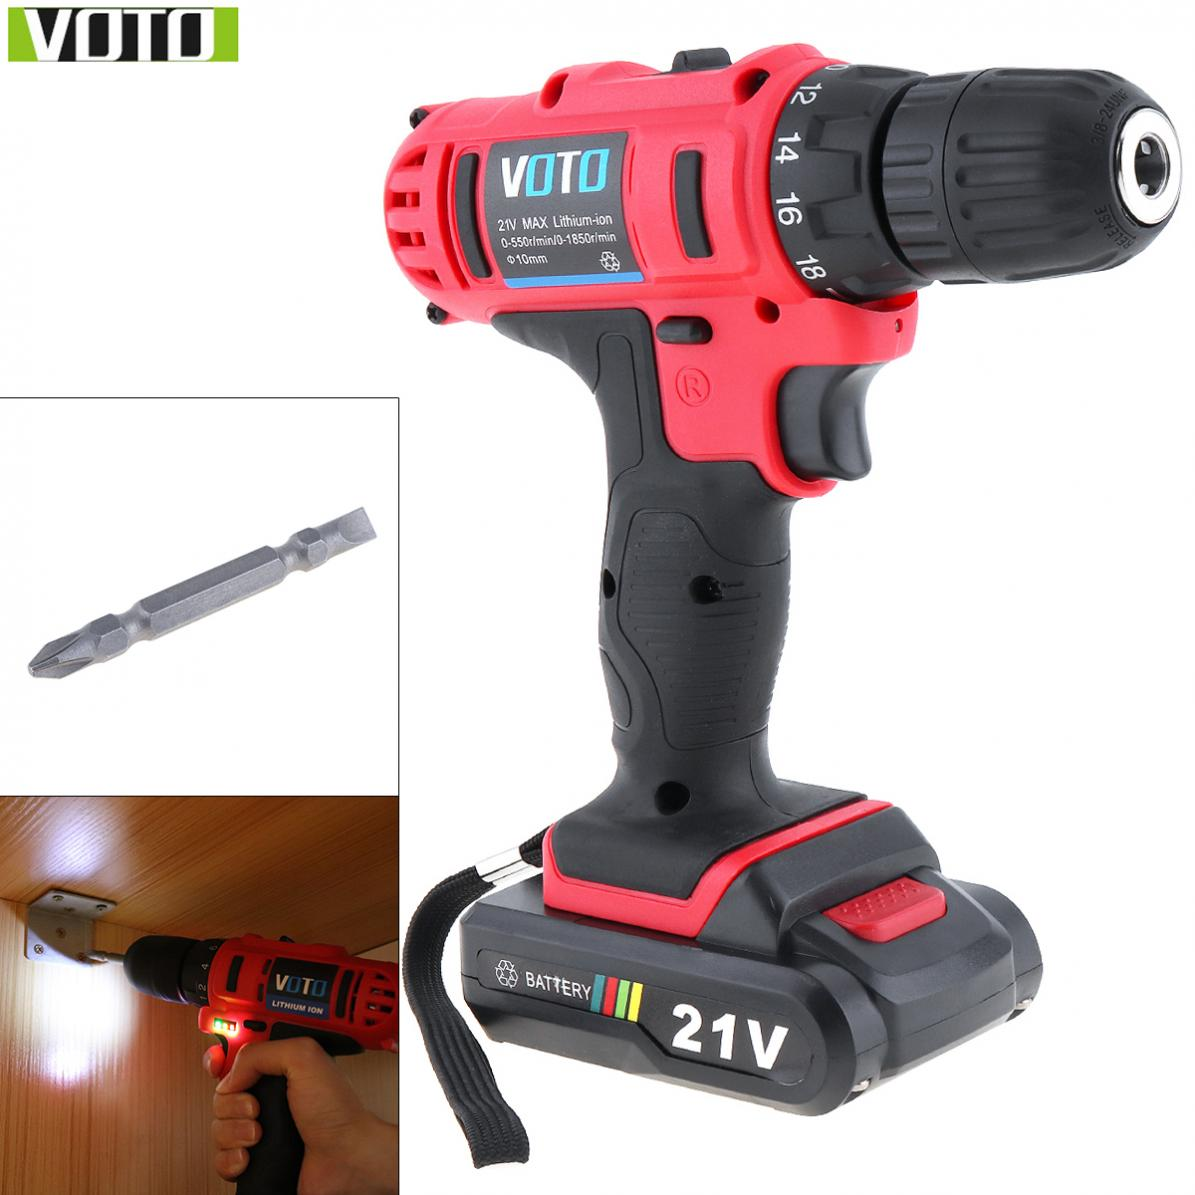 VOTO Electric Screwdrivers 100 240V Cordless 21V Two speed Electric Screwdriver with Lithium Battery for Handling